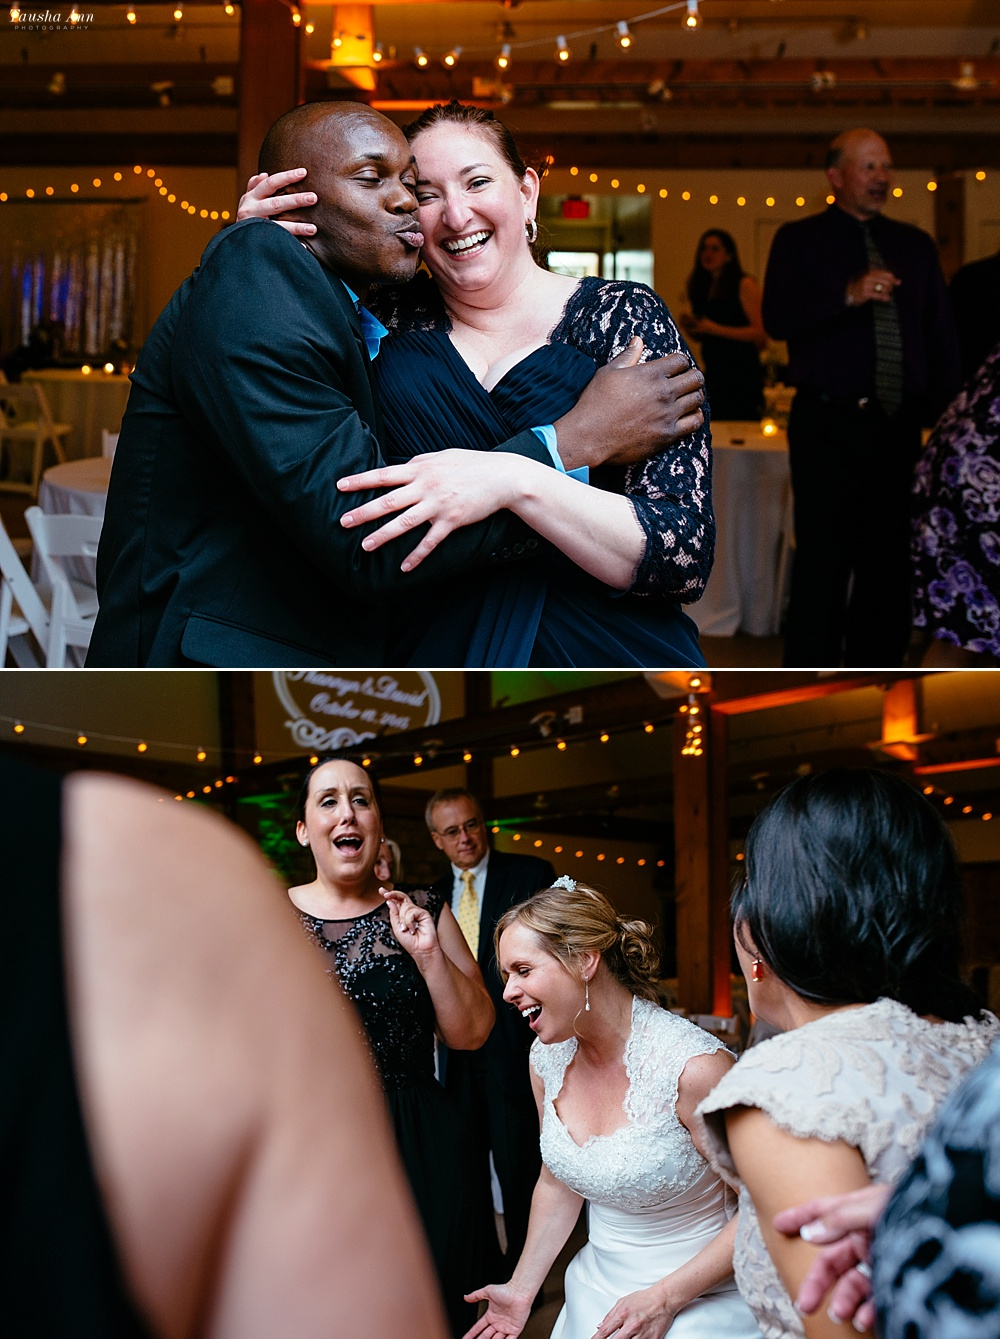 Dancing at reception, candid photos of guests.